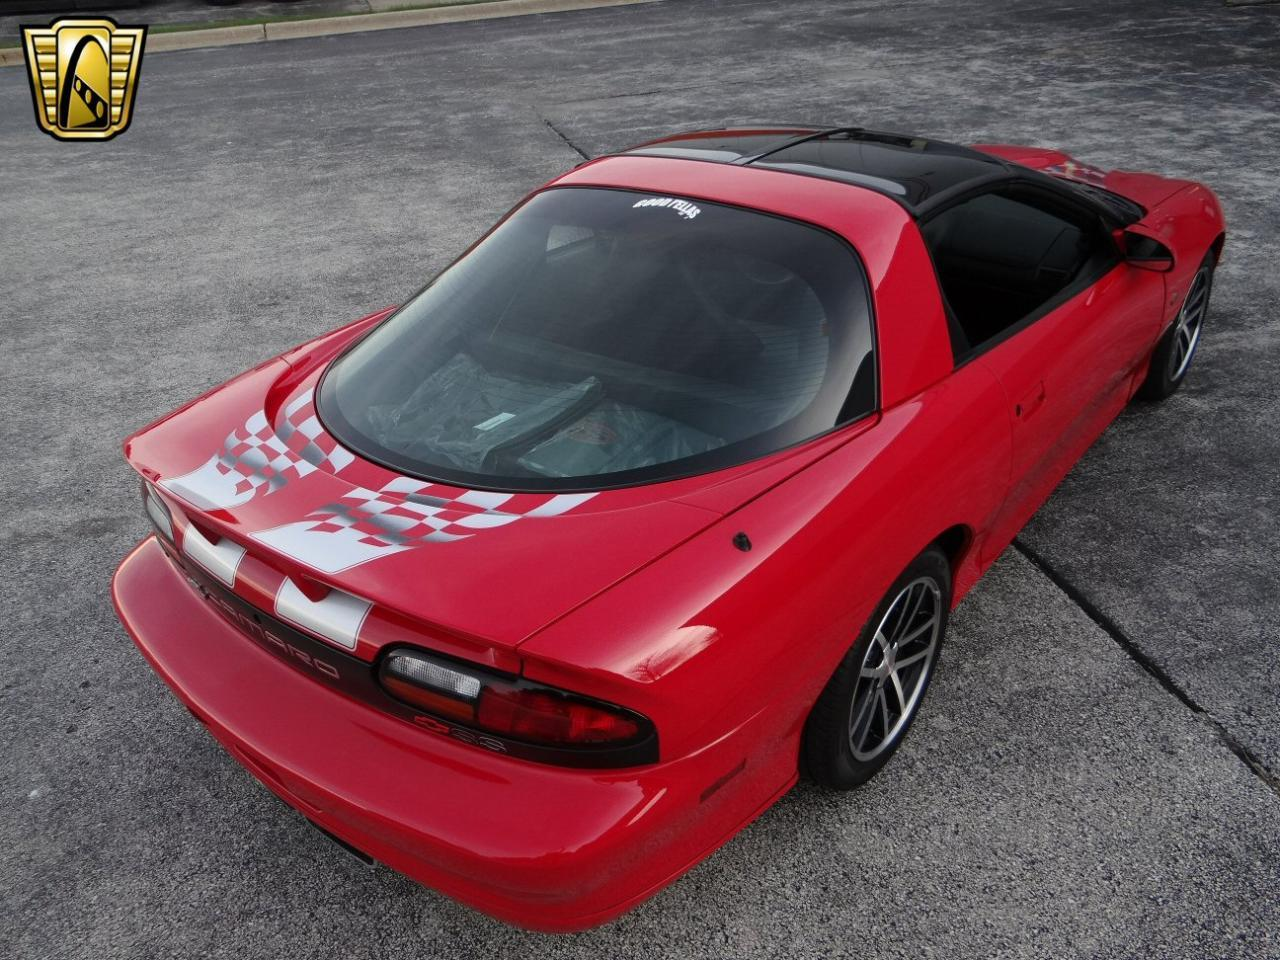 Large Picture of '02 Chevrolet Camaro located in Illinois Offered by Gateway Classic Cars - Chicago - L44H